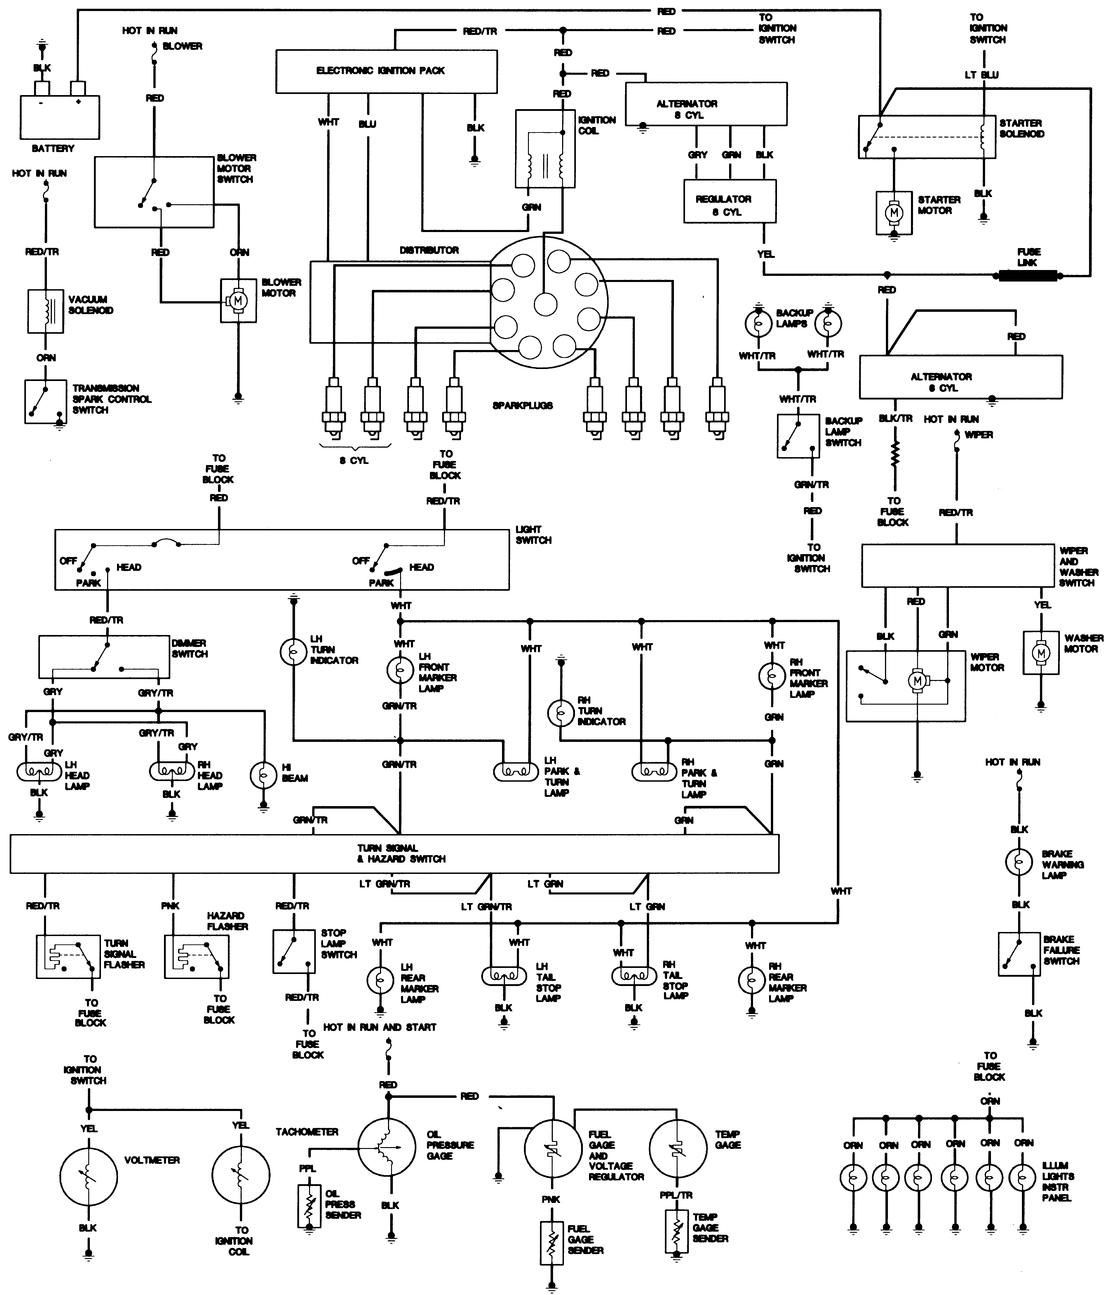 1980 jeep cj5 wiring diagram detailed schematics diagram rh desjeux2moto com 1980 Jeep CJ7 Wiring-Diagram 85 Jeep CJ7 Wiring-Diagram